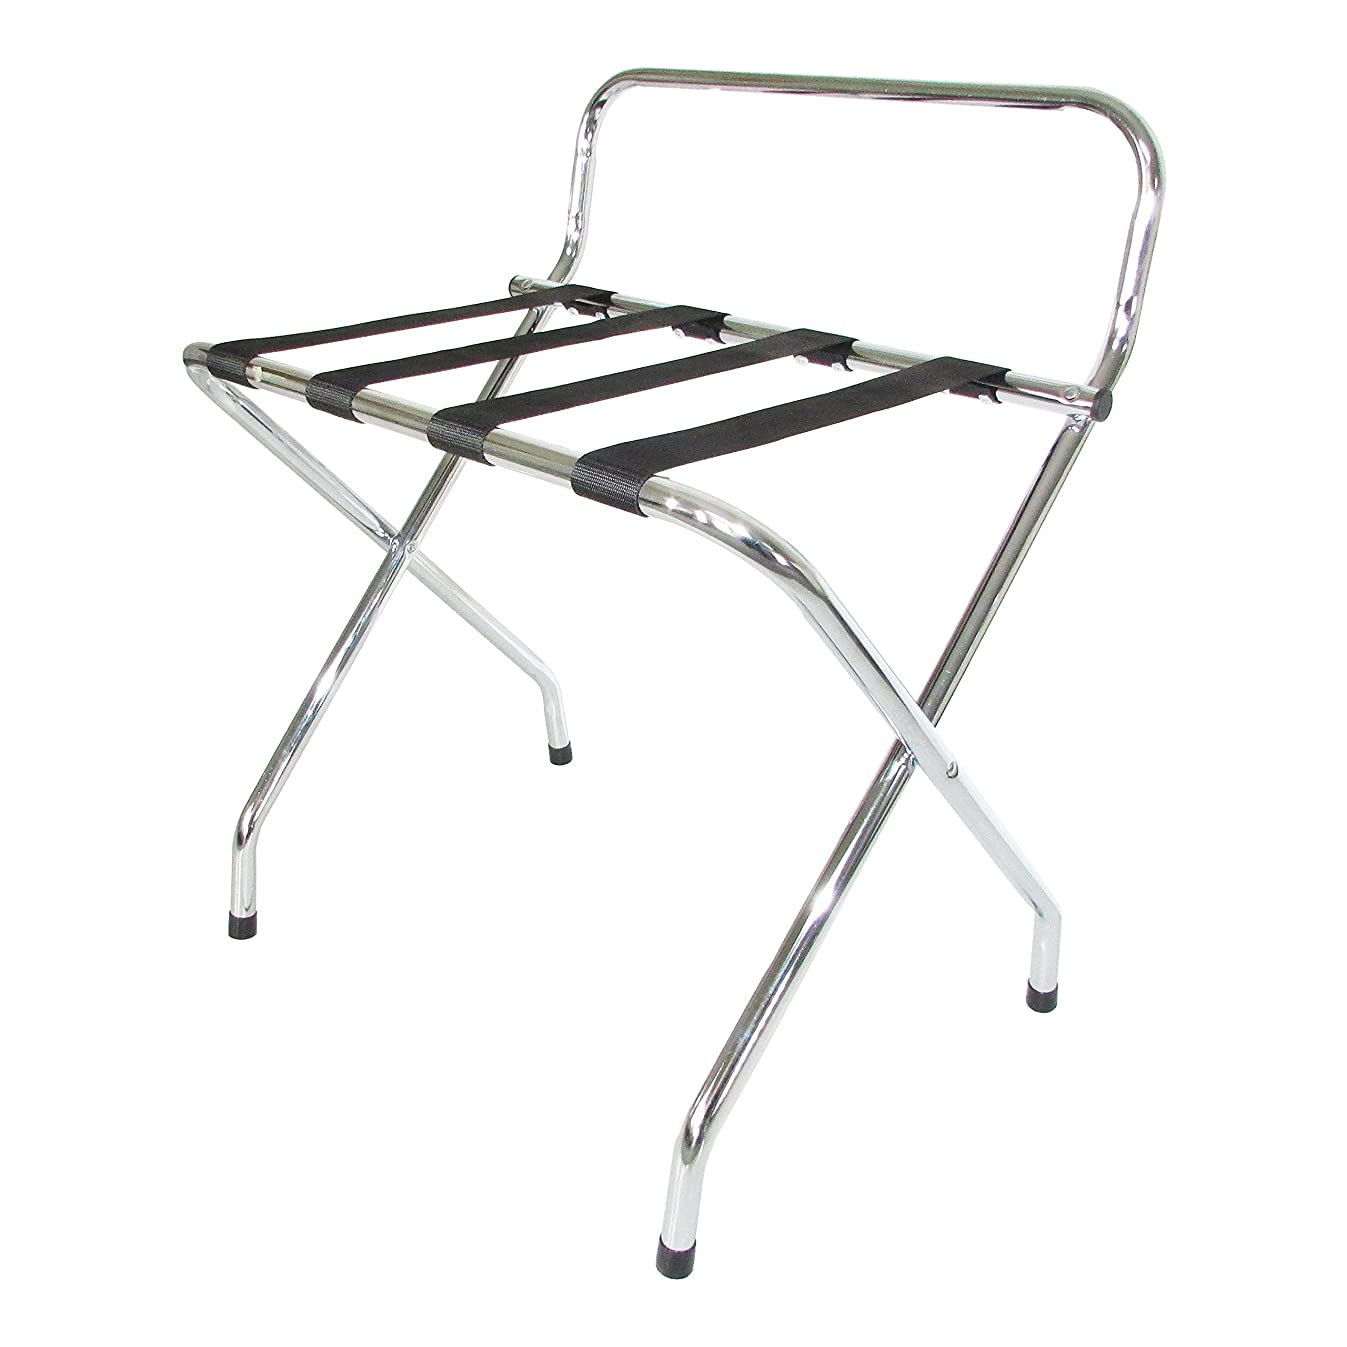 USTECH Chrome Luggage Rack with High Back